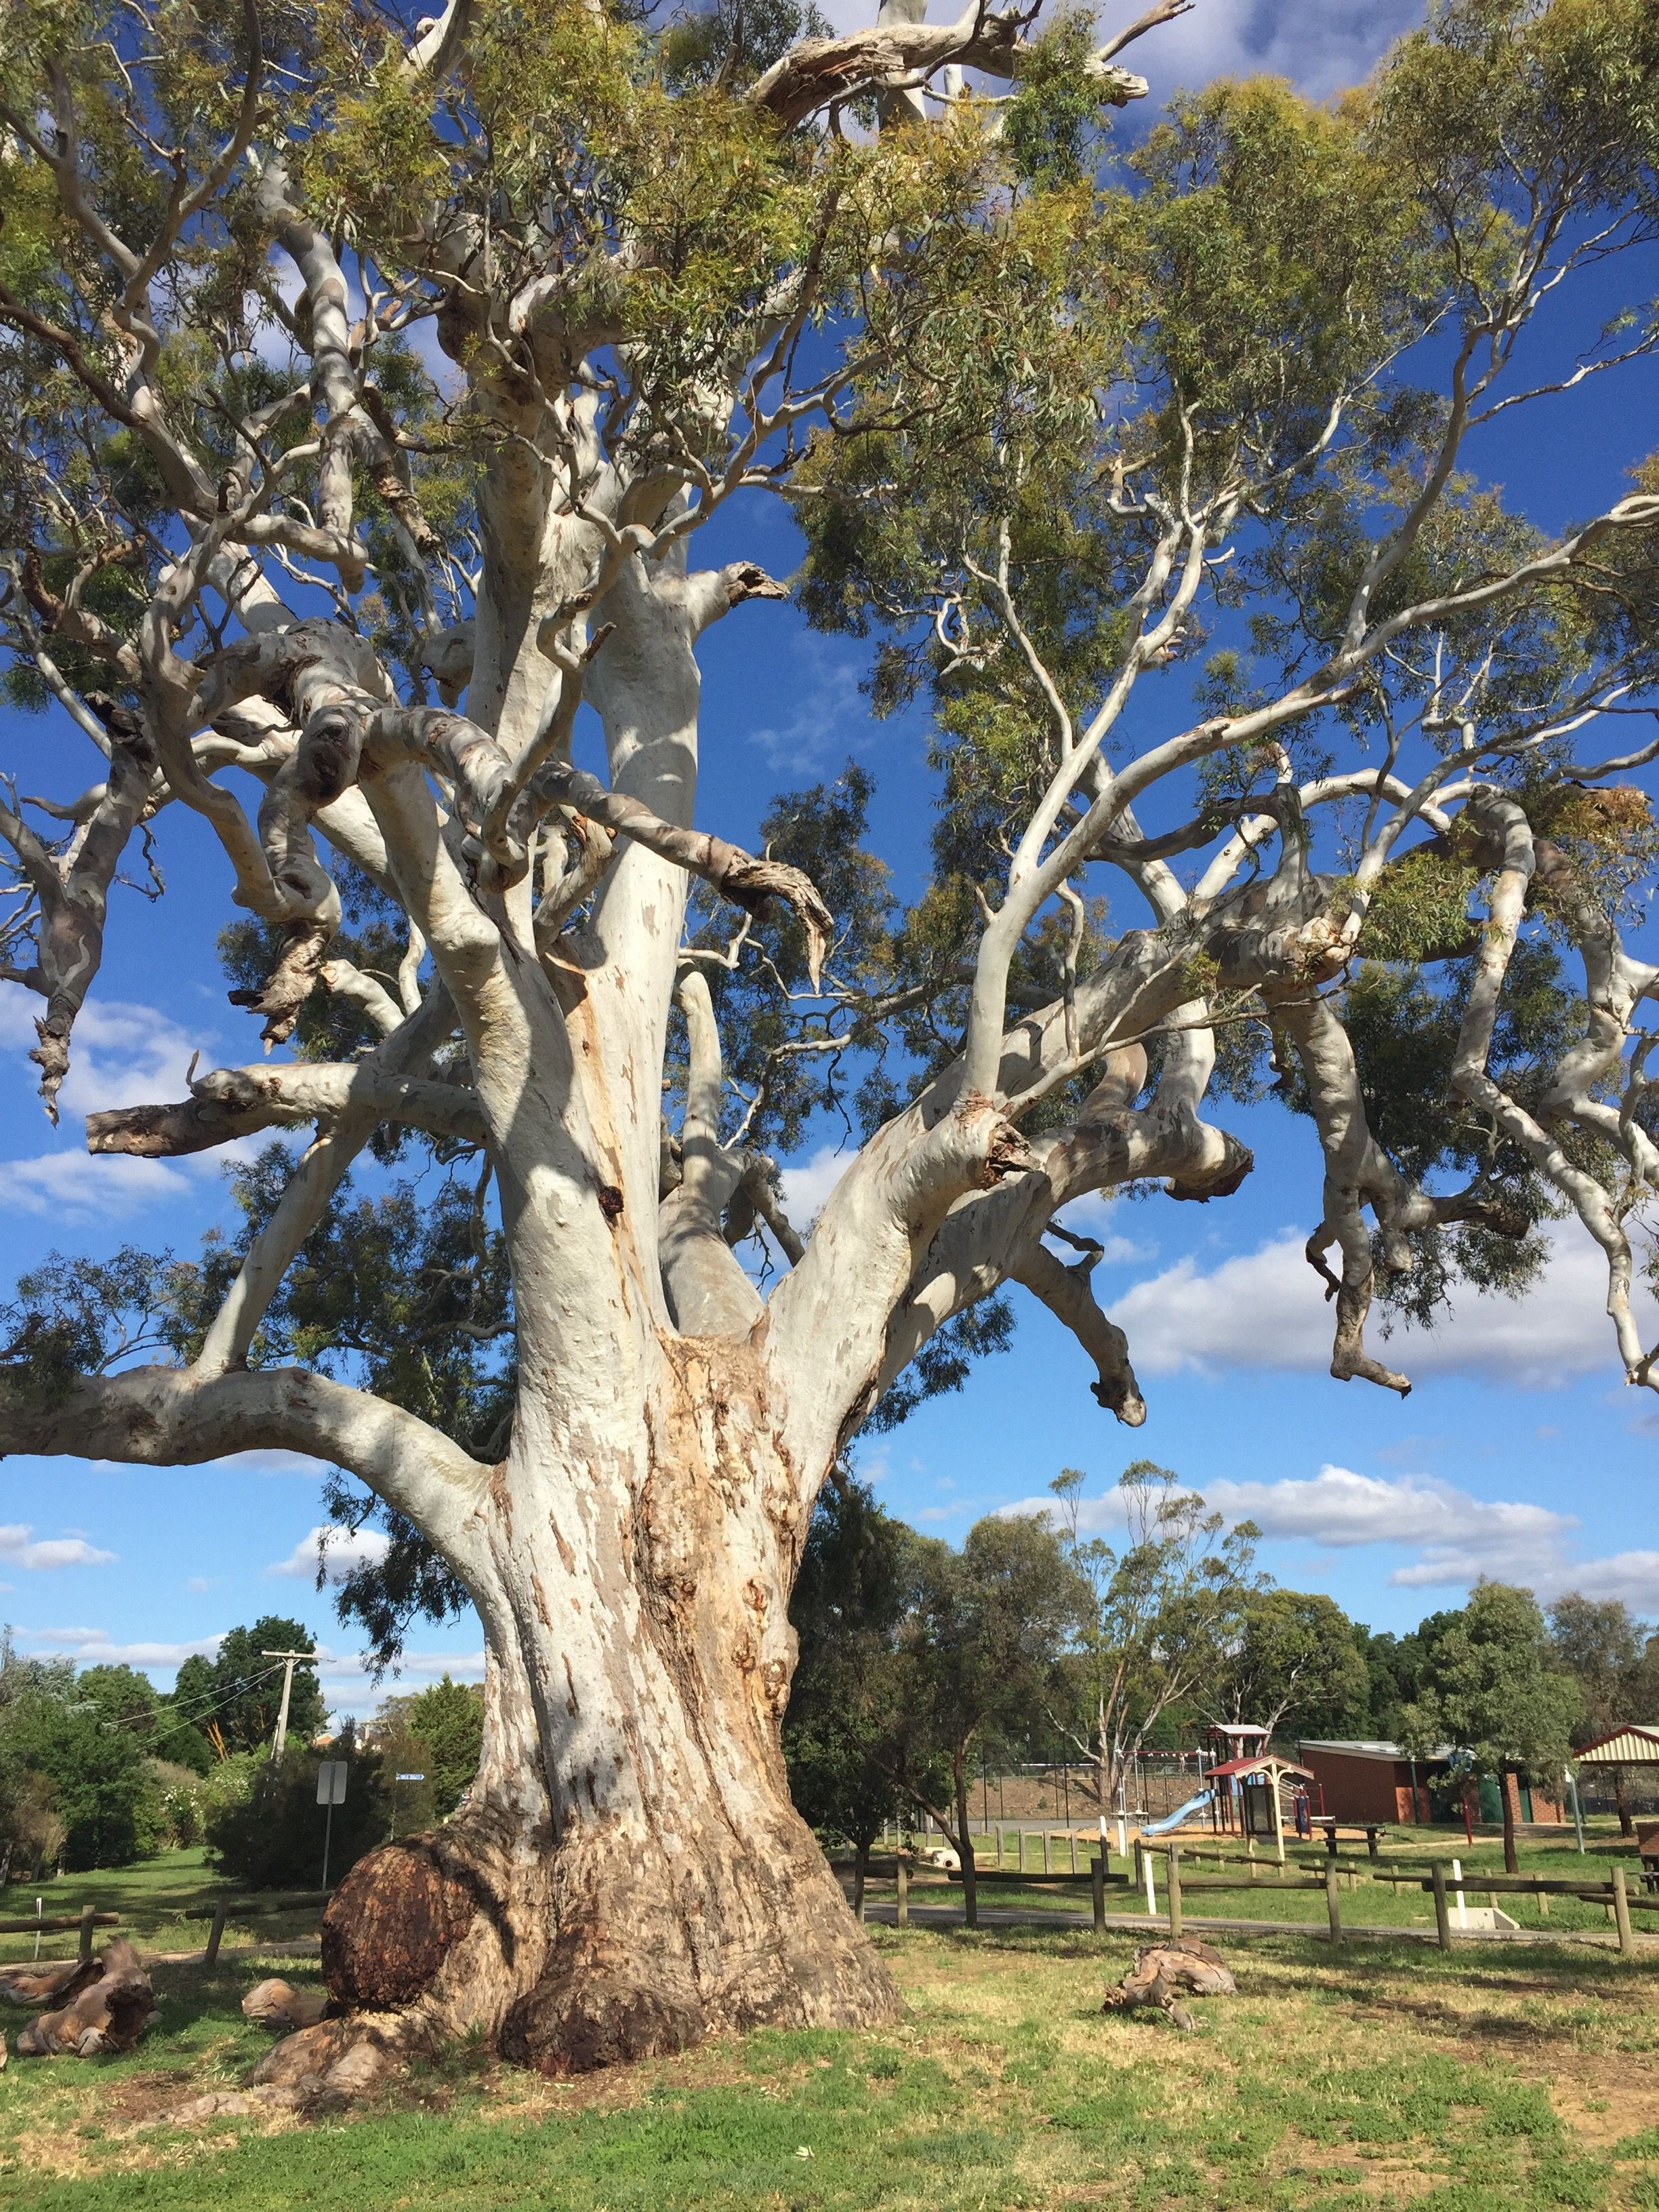 River Red Gum Eucalyptus Camaldulensis Growing Near The Town Of Daylesford Vic Australia Eucalyptus Tree Australian Trees Fast Growing Trees